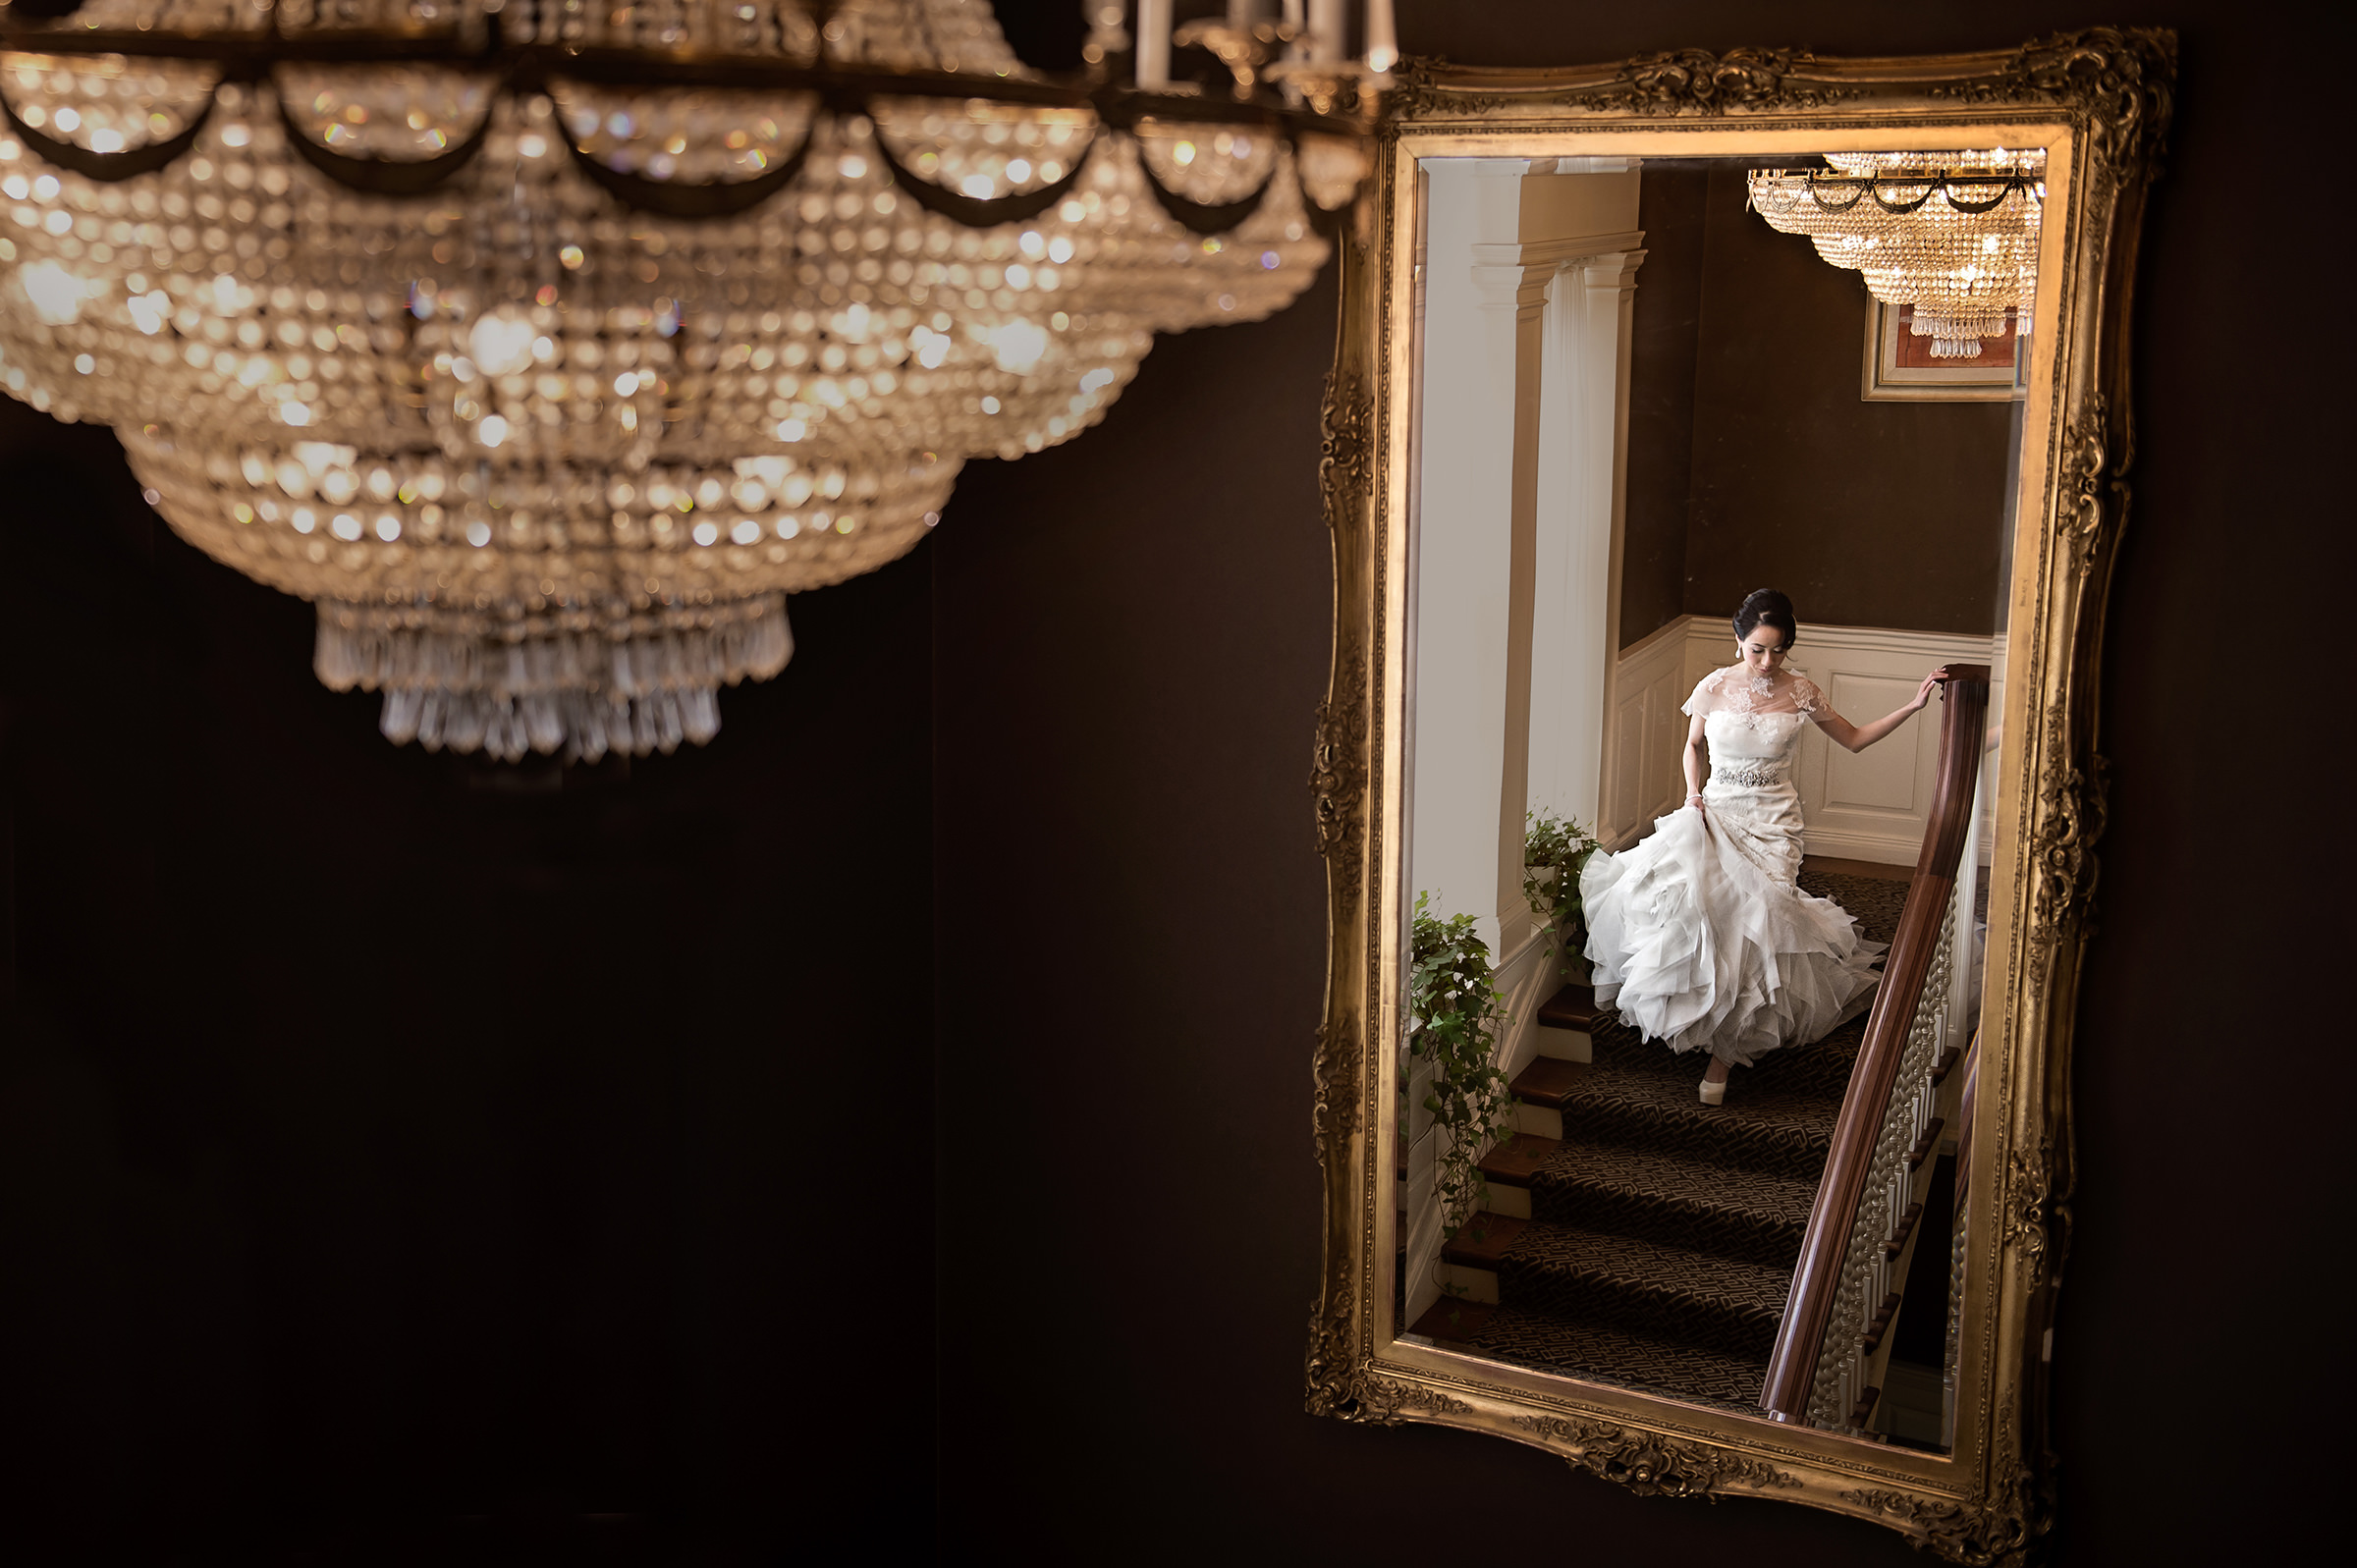 Reflection of bride descending stairway - photographed by David and Sherry - Canada